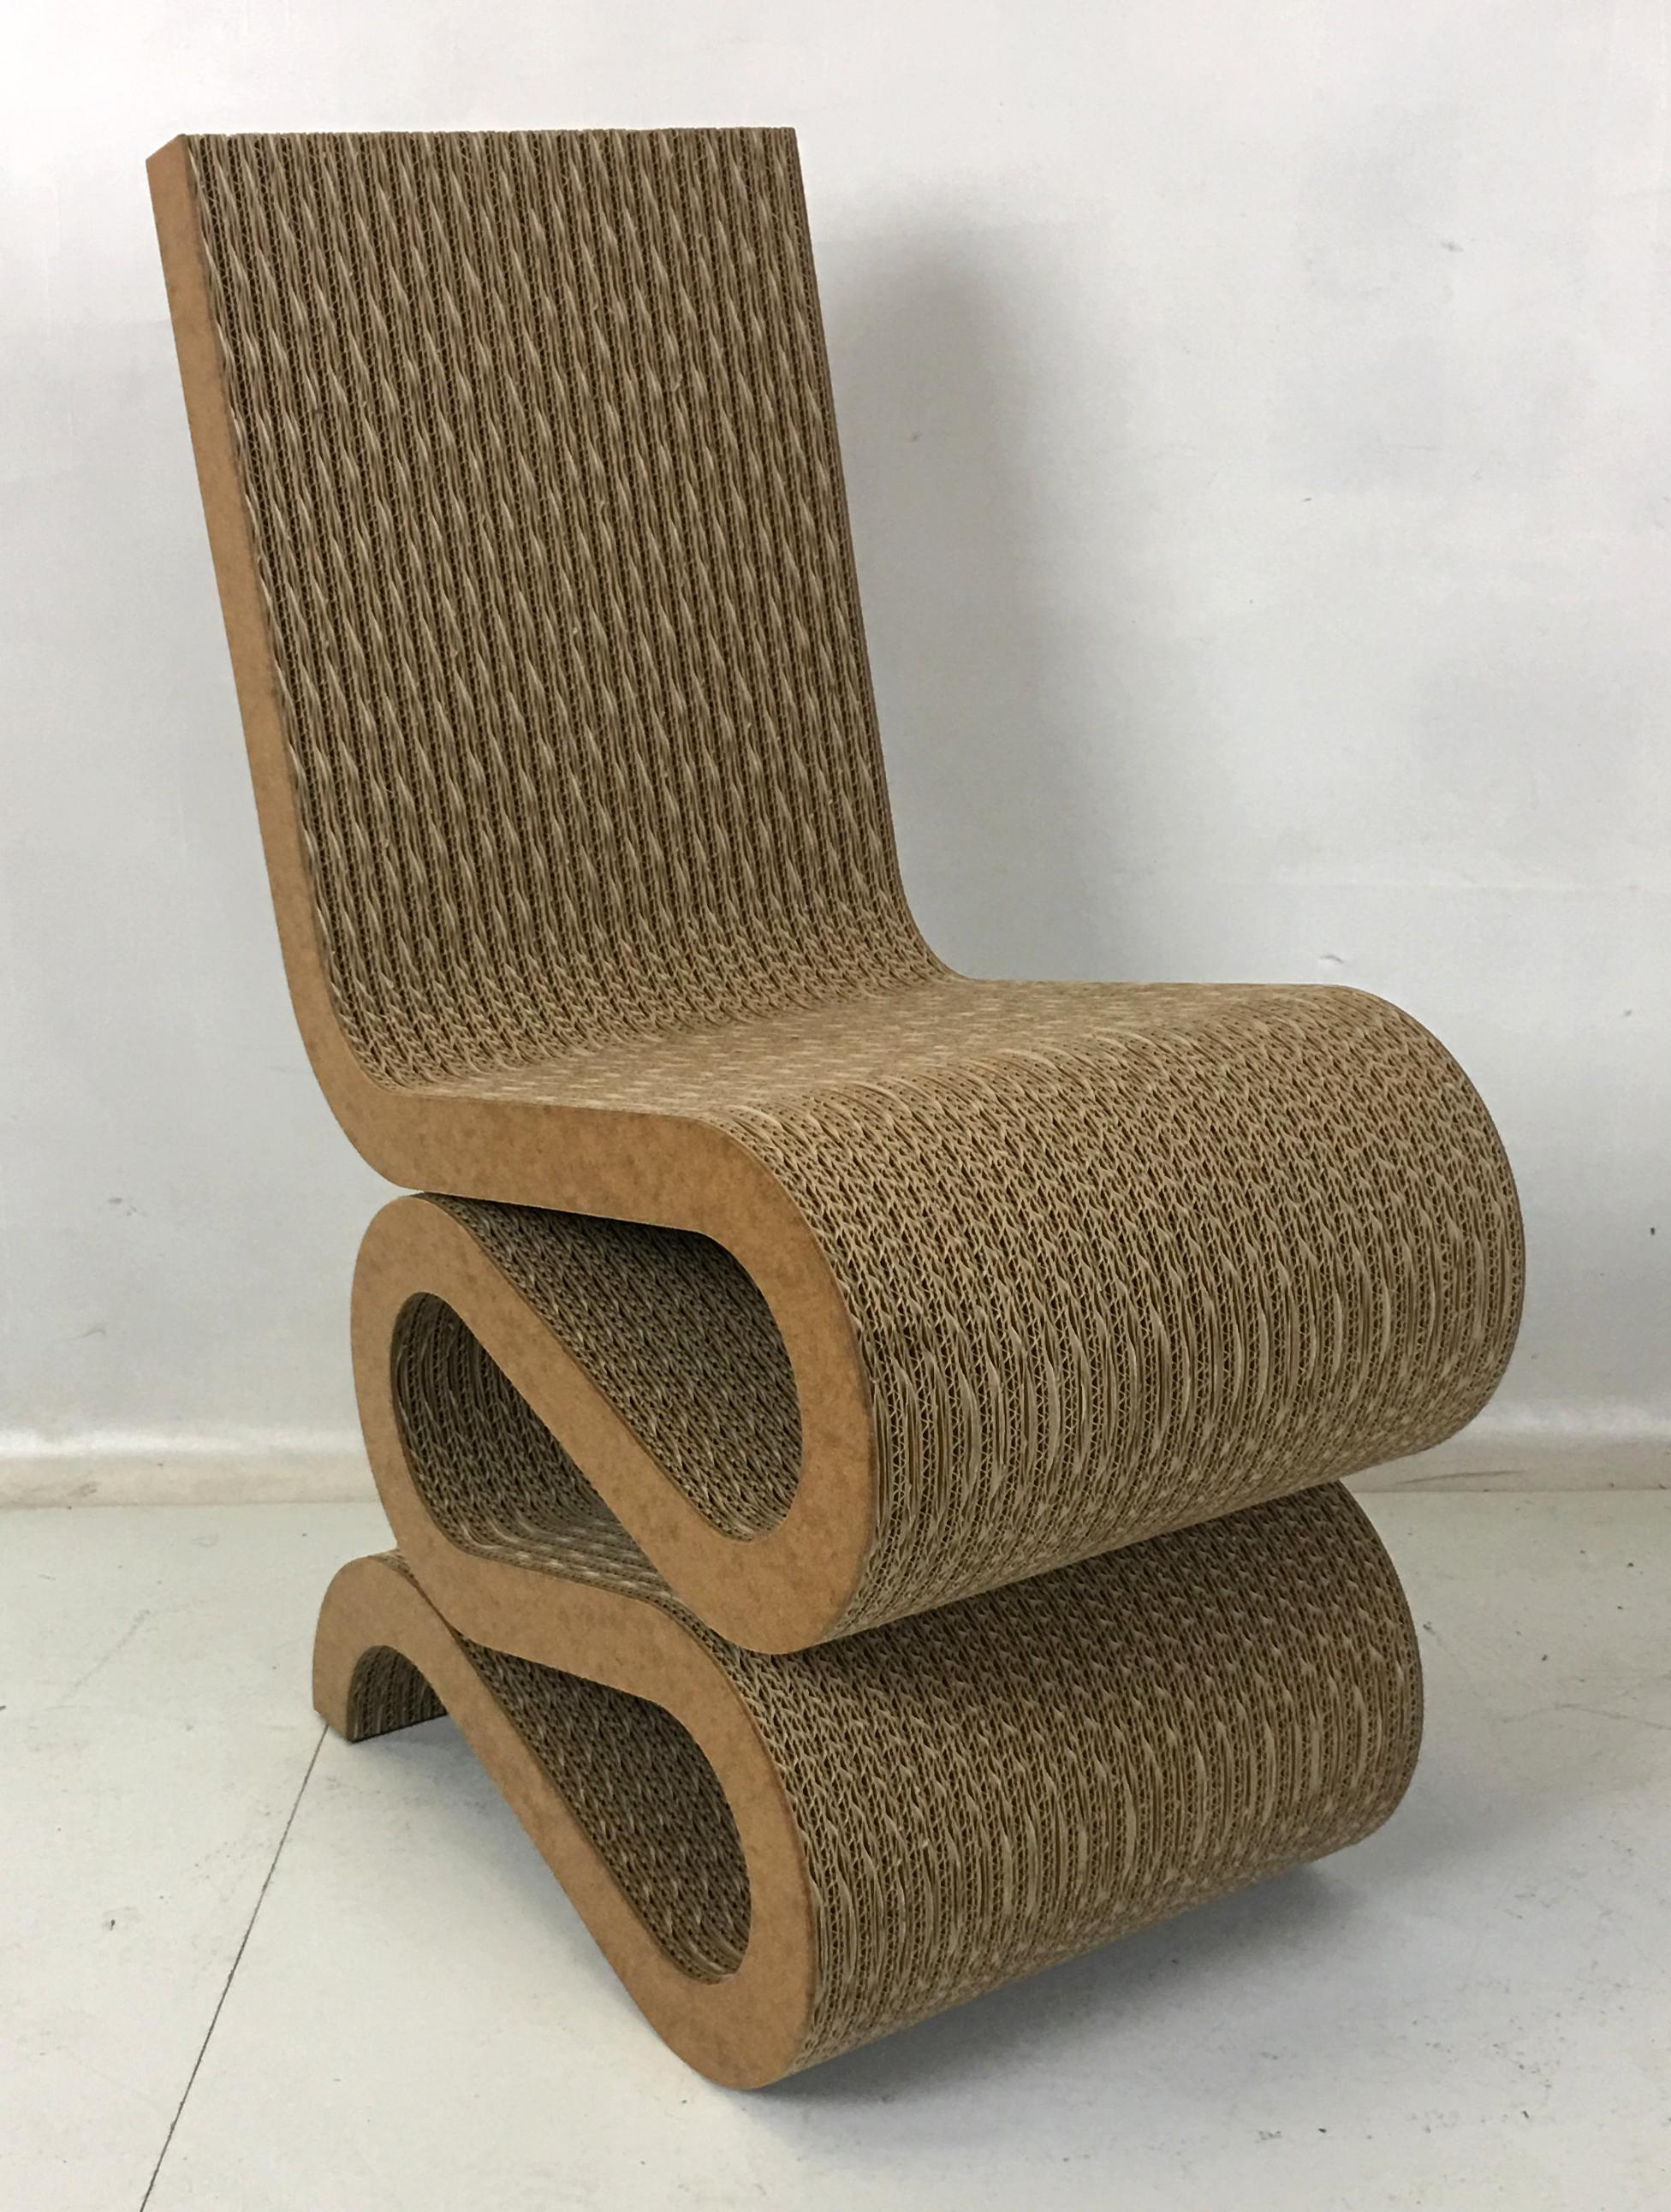 Frank Gehry Wiggle Chair By Frank Gehry For Vitra For Sale   Image 4 Of 6